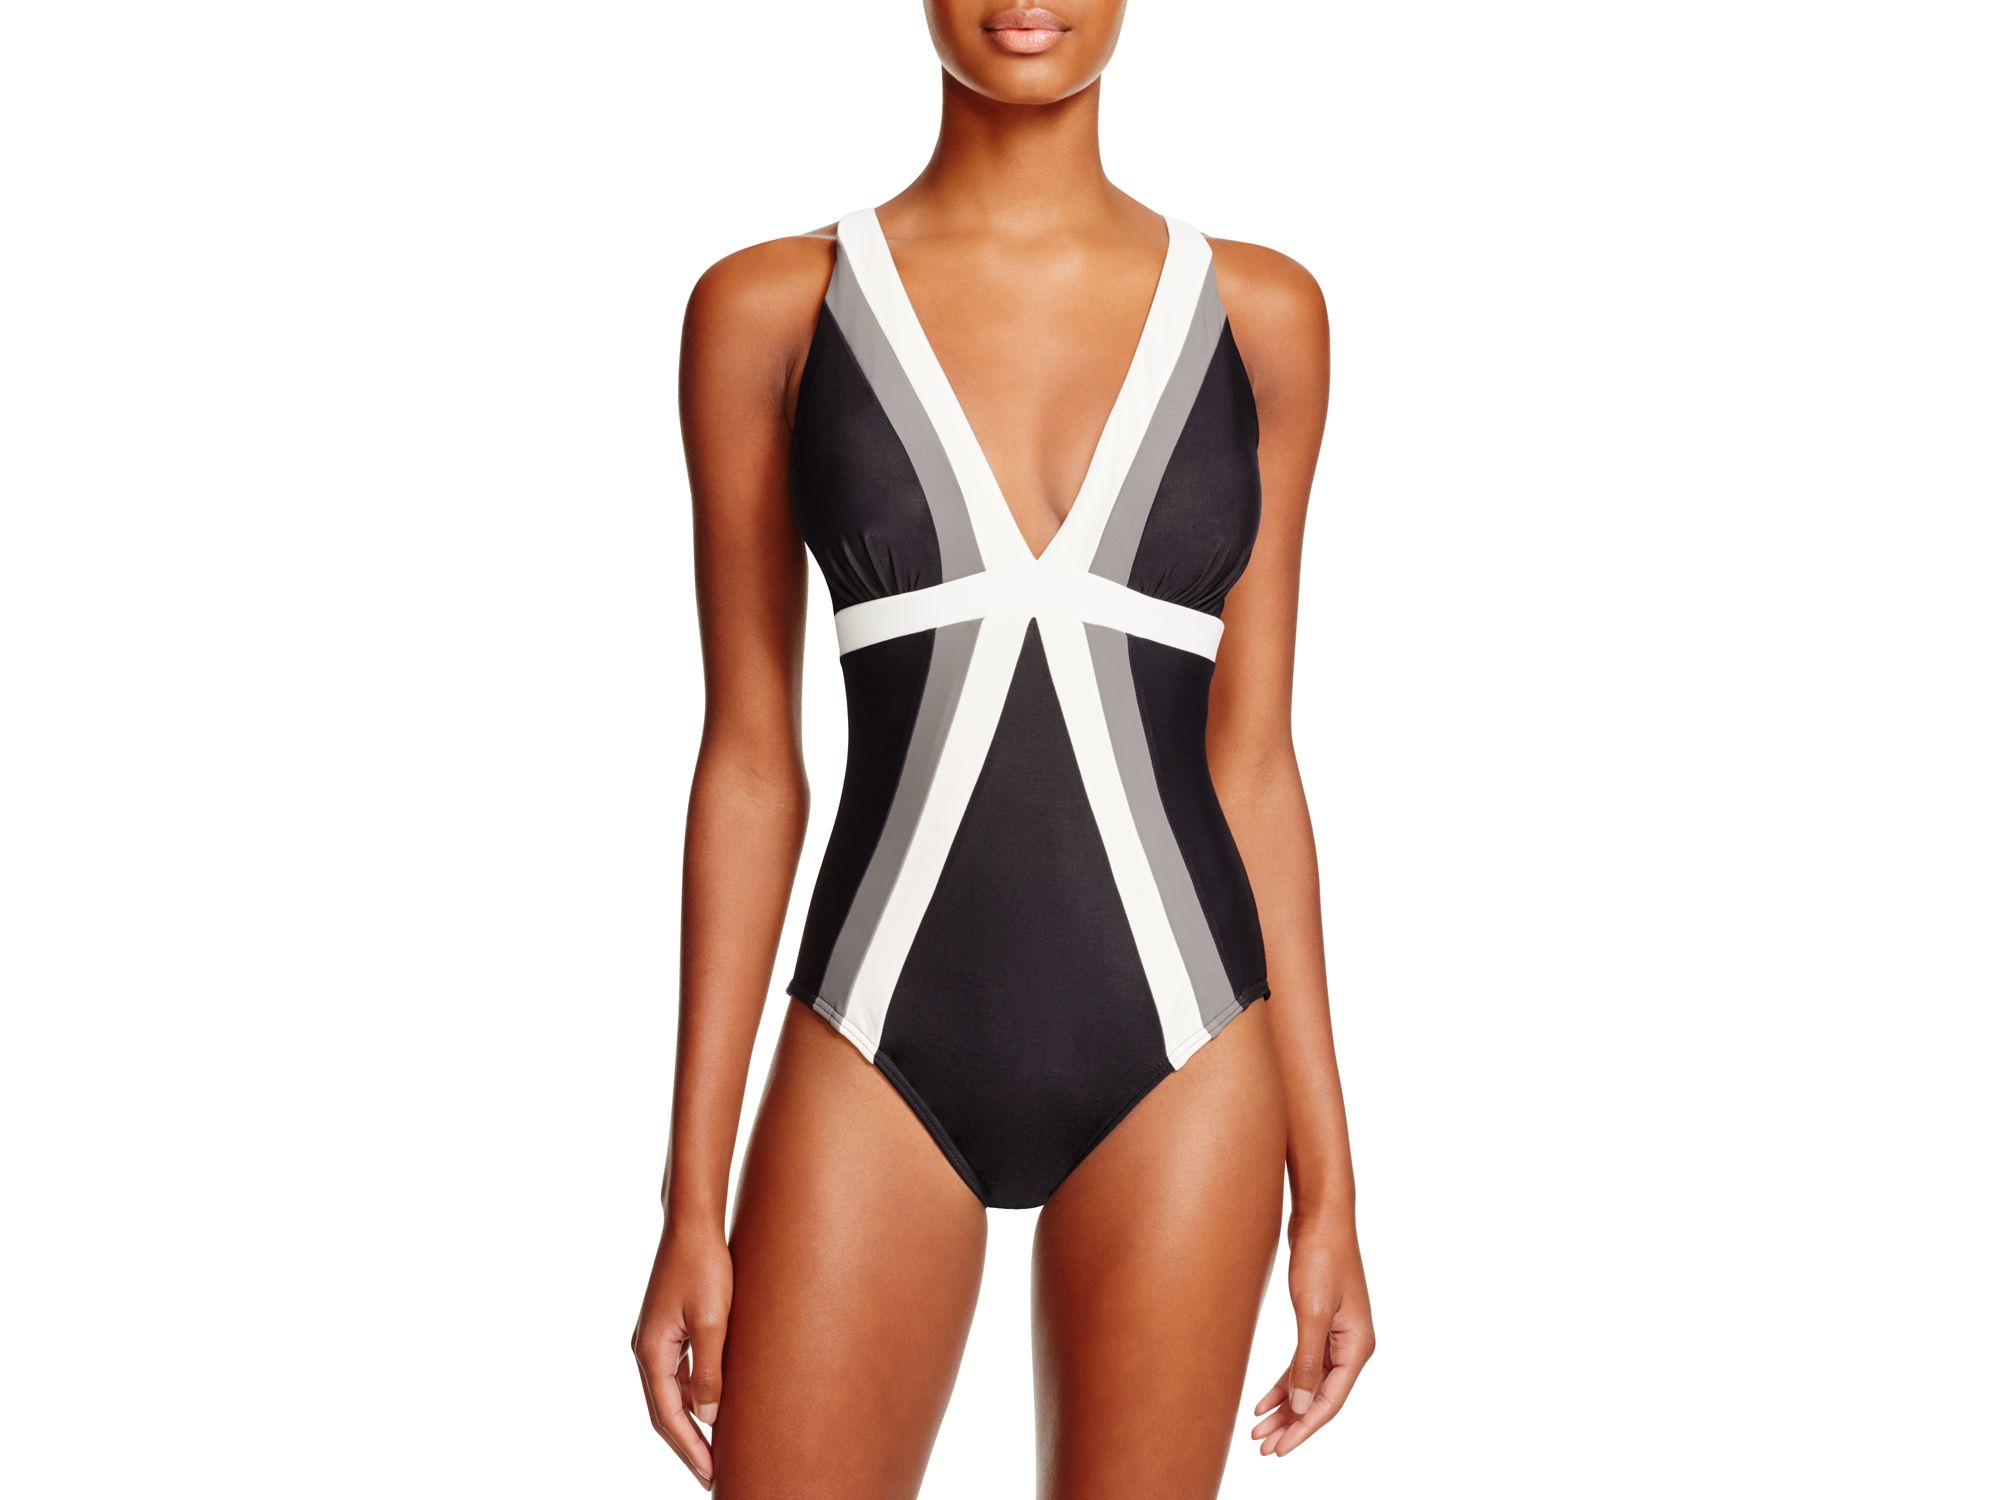 769cf2fad6913 Miraclesuit Spectra Trilogy One Piece Swimsuit in Black - Lyst